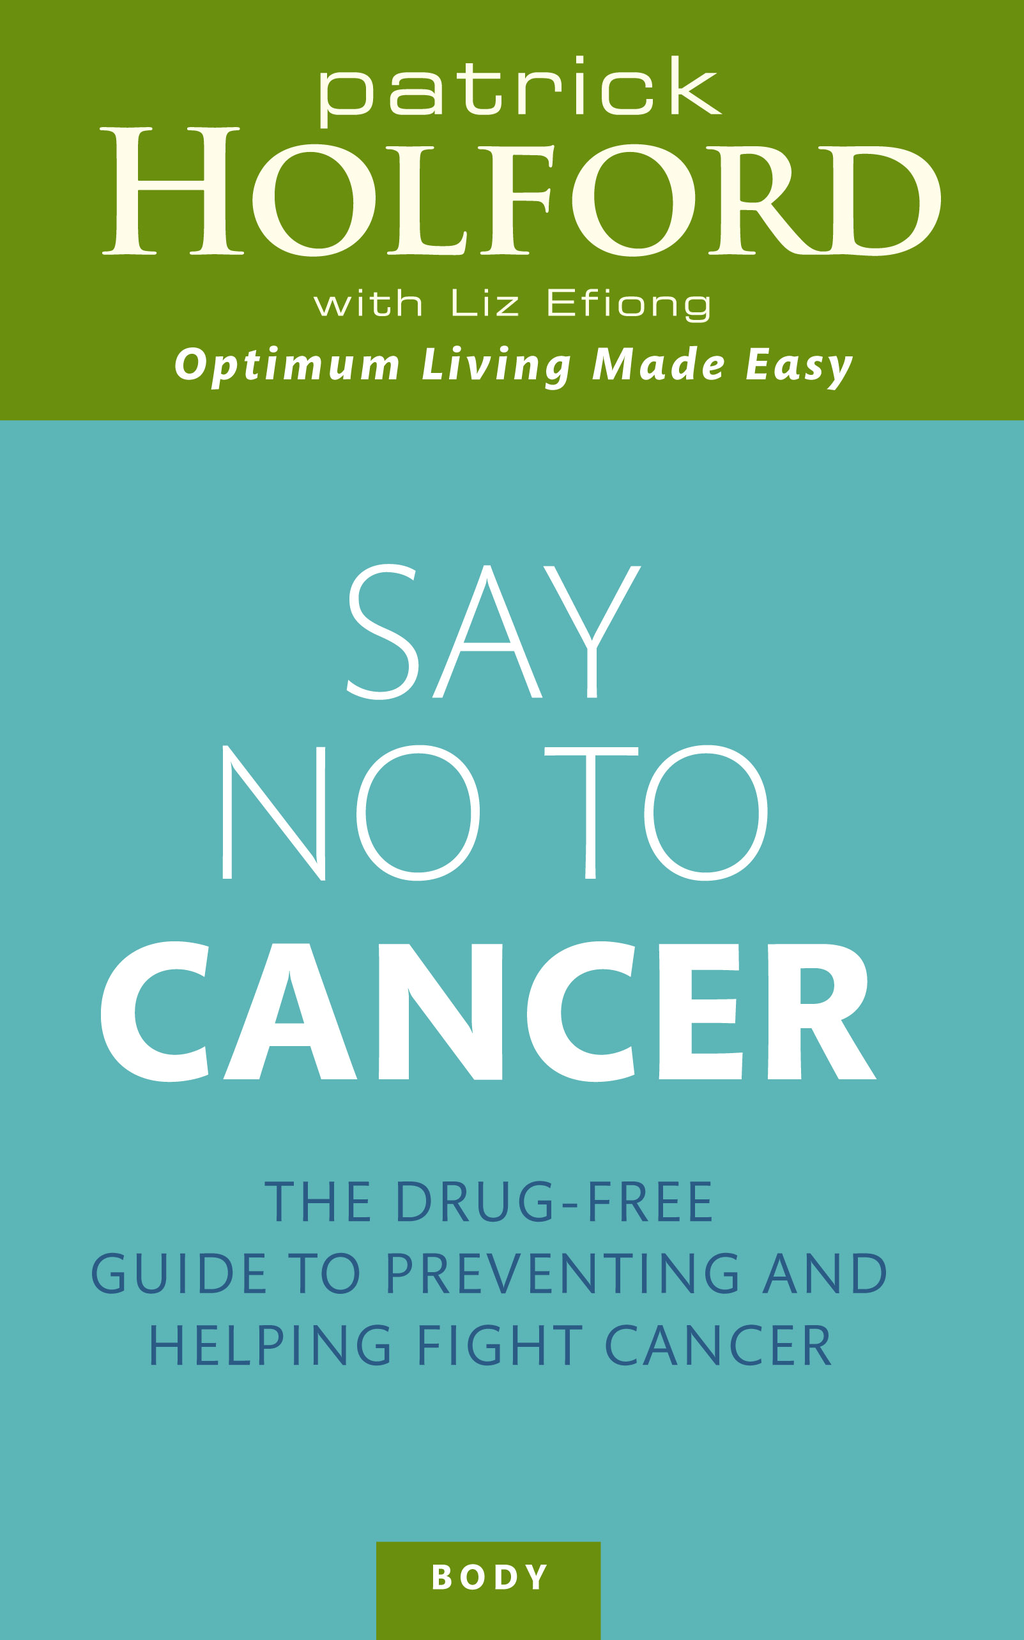 Say No To Cancer The drug-free guide to preventing and helping fight cancer